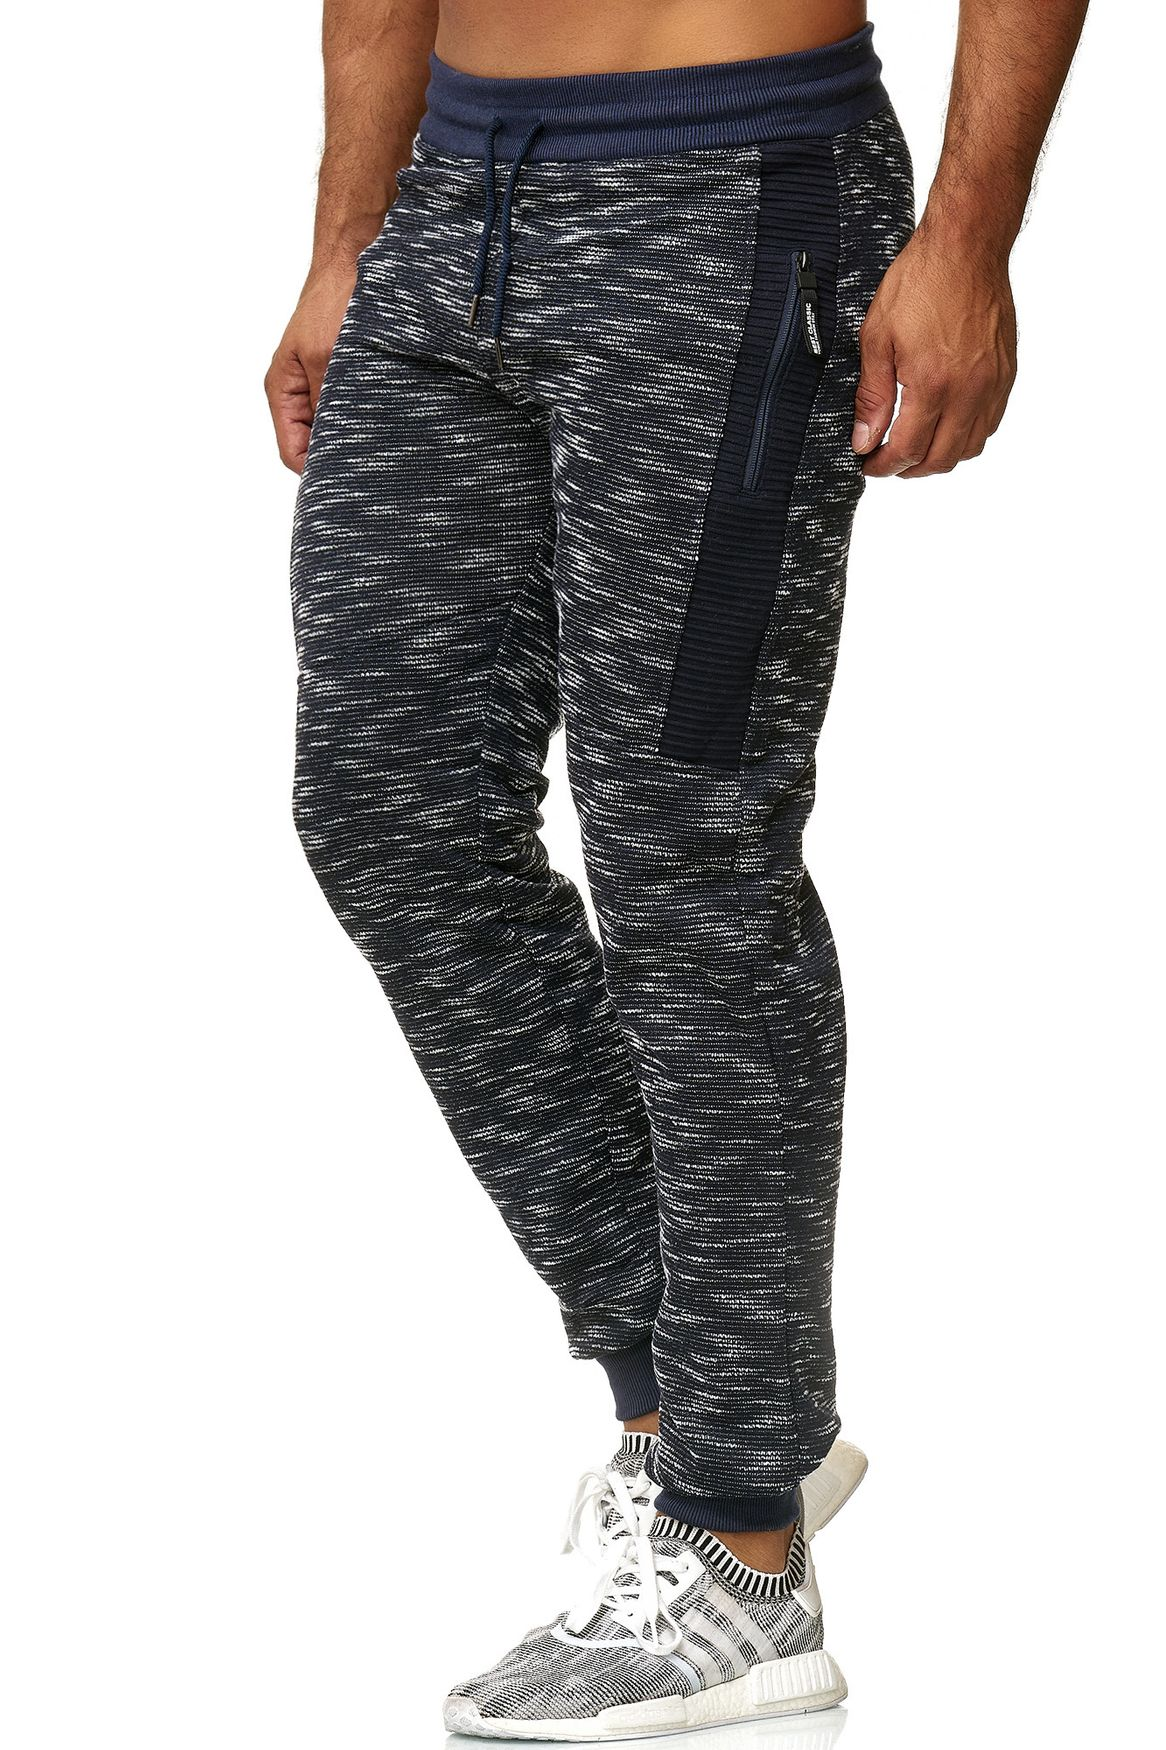 3b058244585b41 Herren Jogginghose Sport Hose Trainings Sweat Pants Trackpants ...